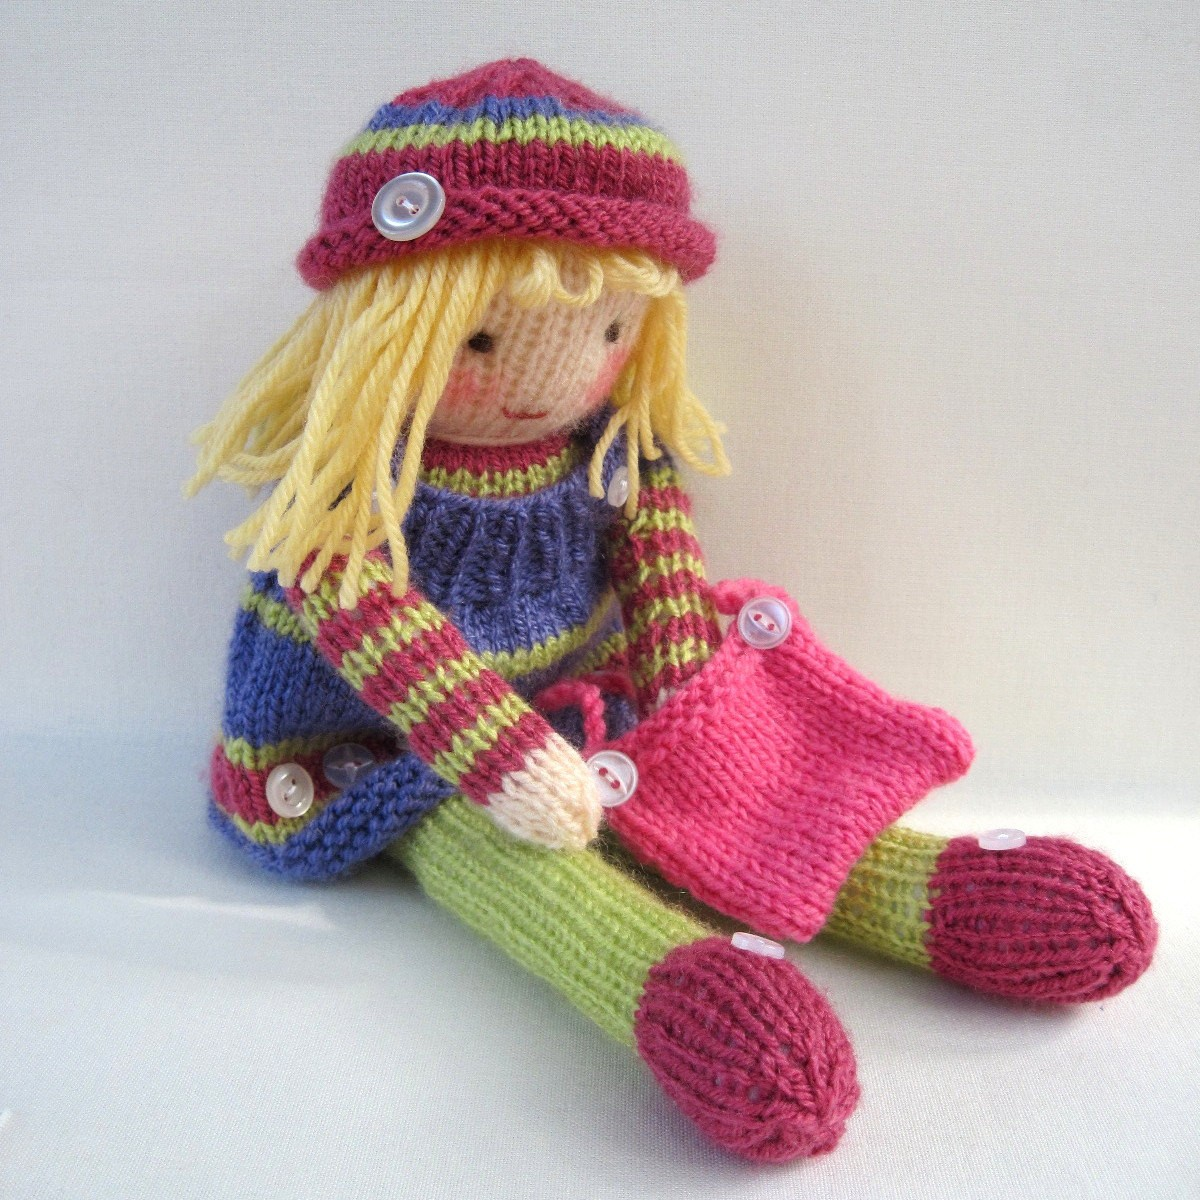 Knitting Pattern Central Food : Download free Knitted Toy Patterns Free - ideafile